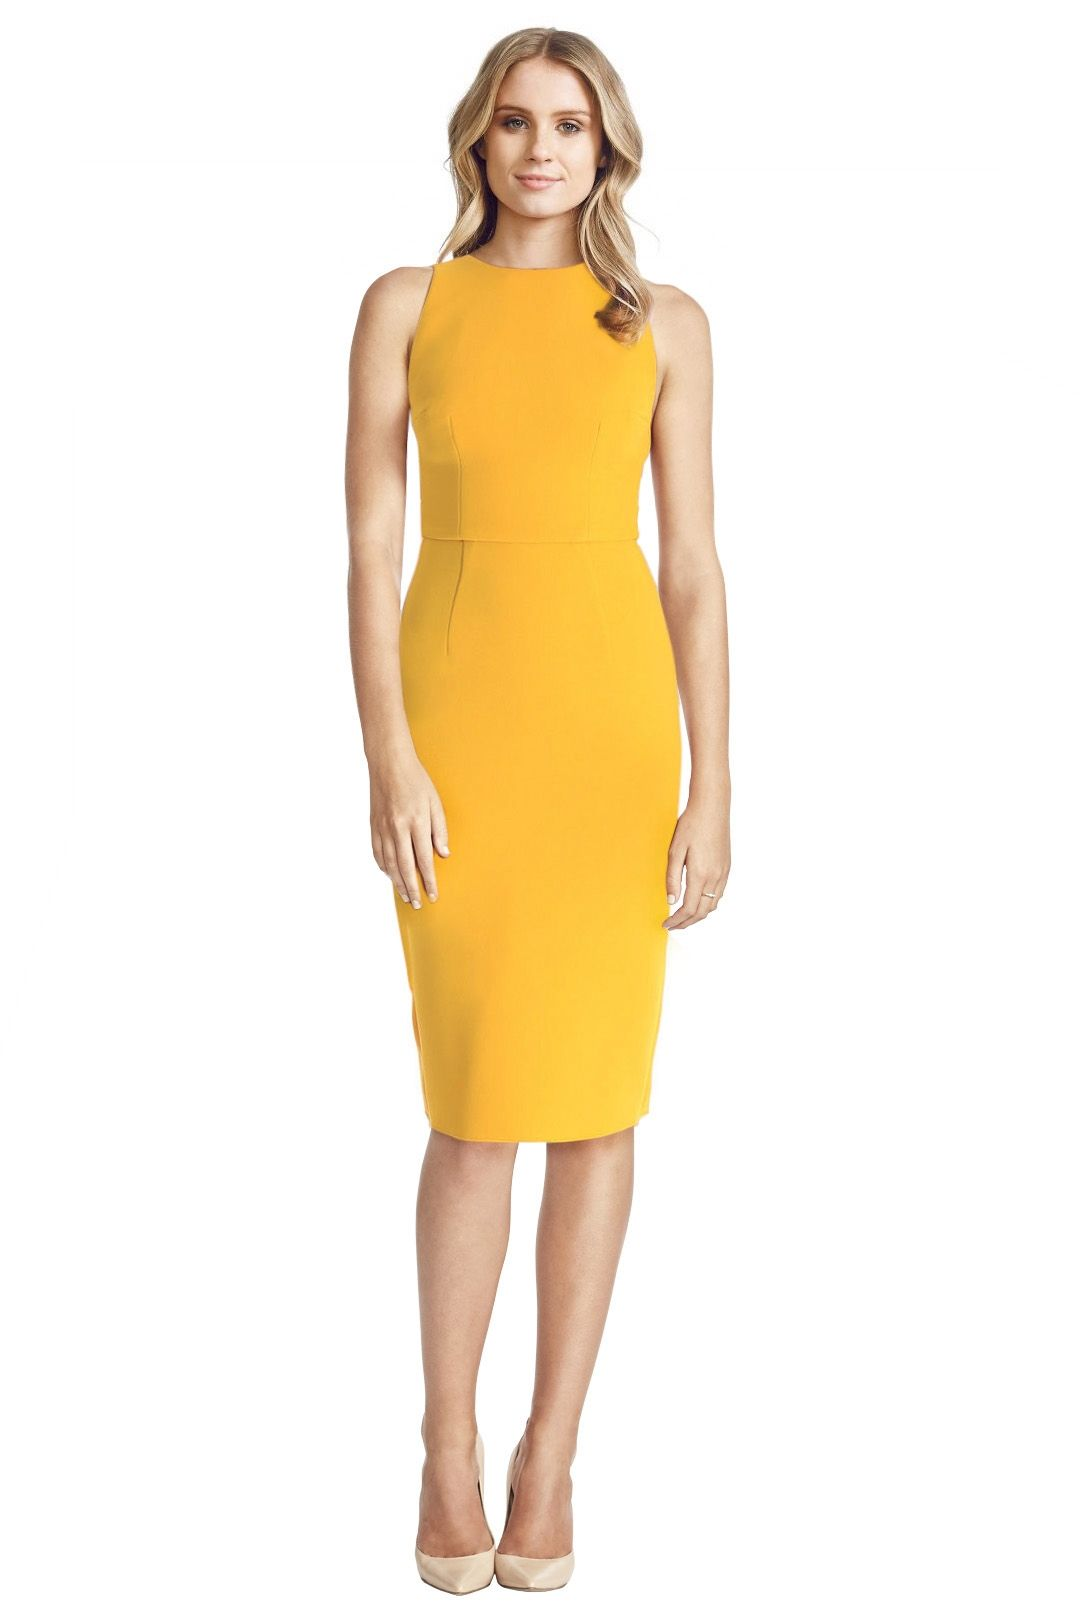 Yeojin Bae - Double Crepe Sophie Dress - Yellow - Front